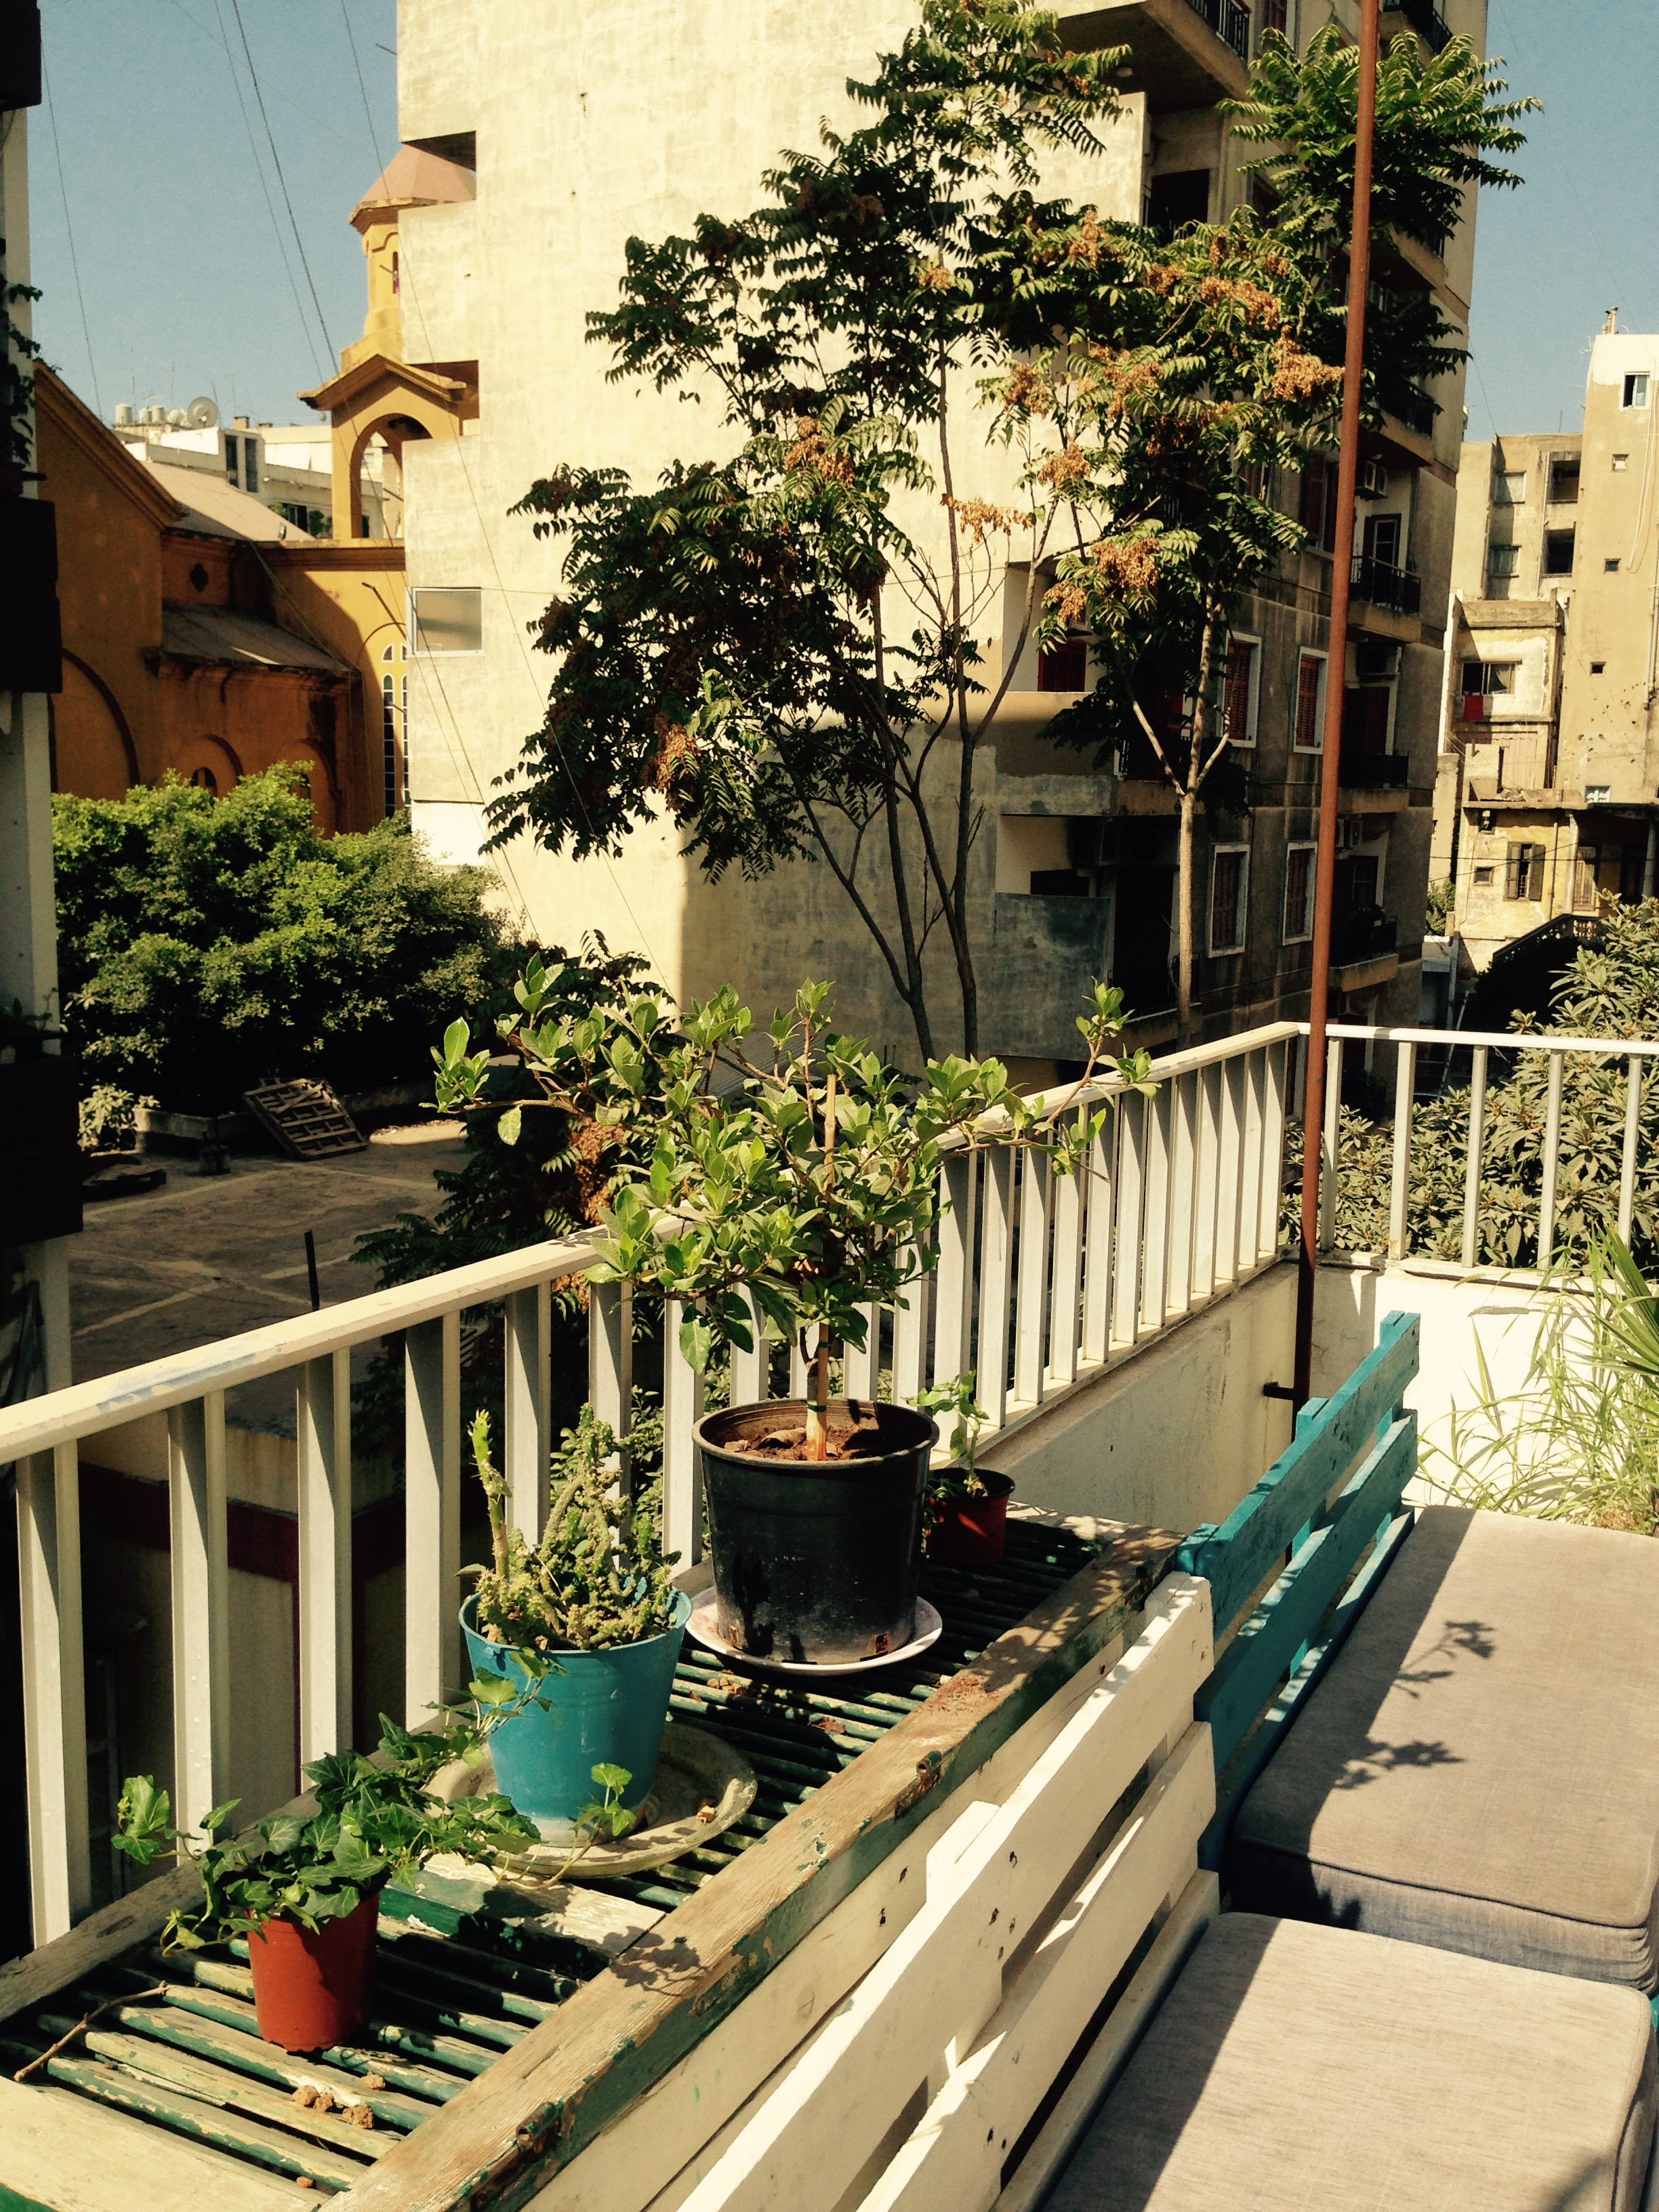 Hostel beirut lebanon 39 s first official hostel for Terrace beirut